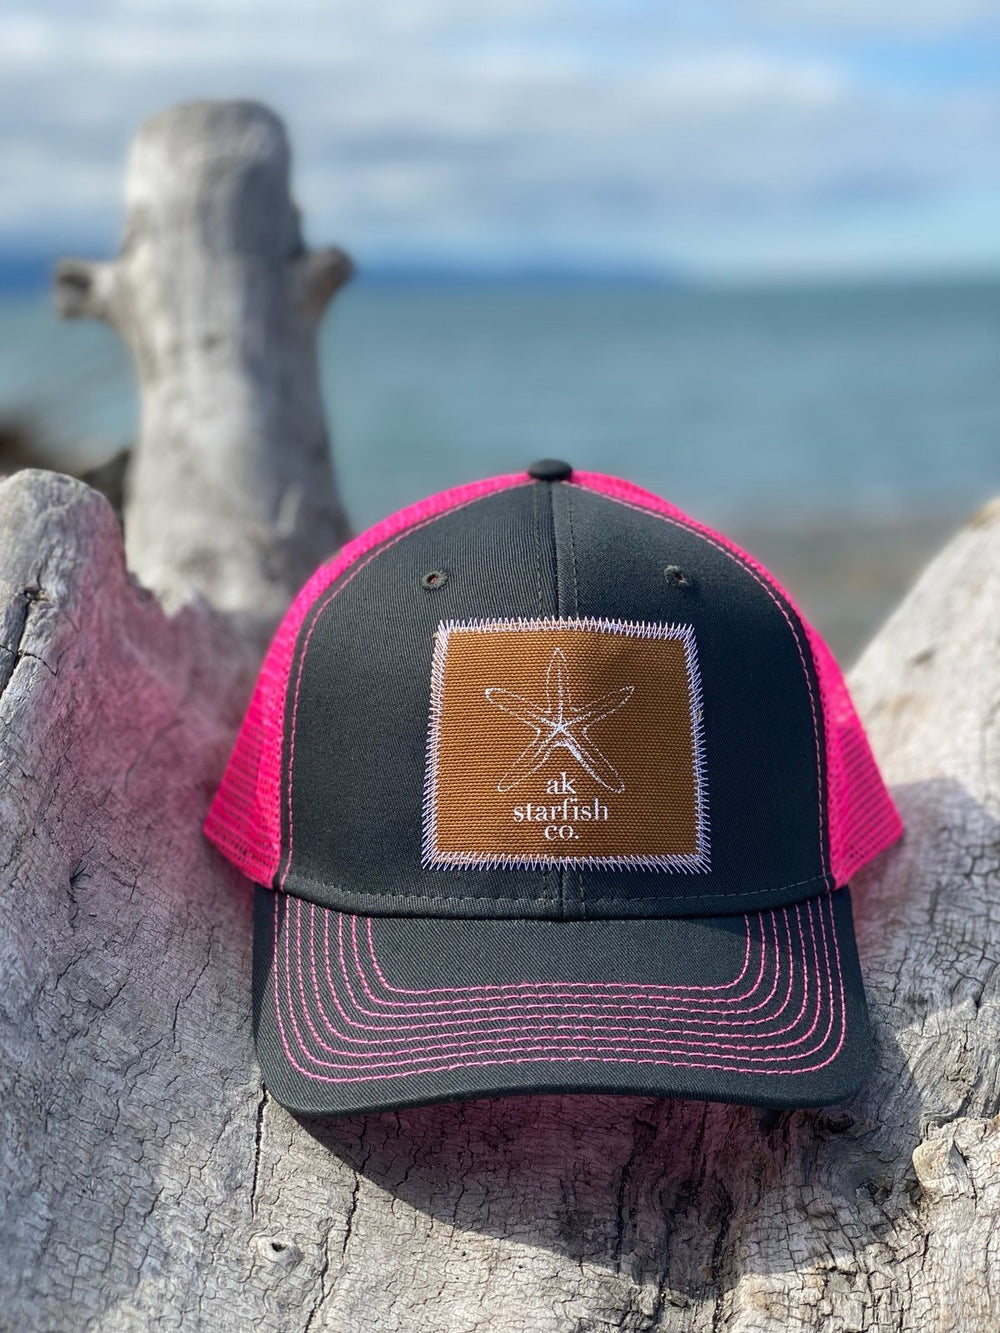 Slate and Glow Pink AK Starfish Co. Patch Hat 35.00